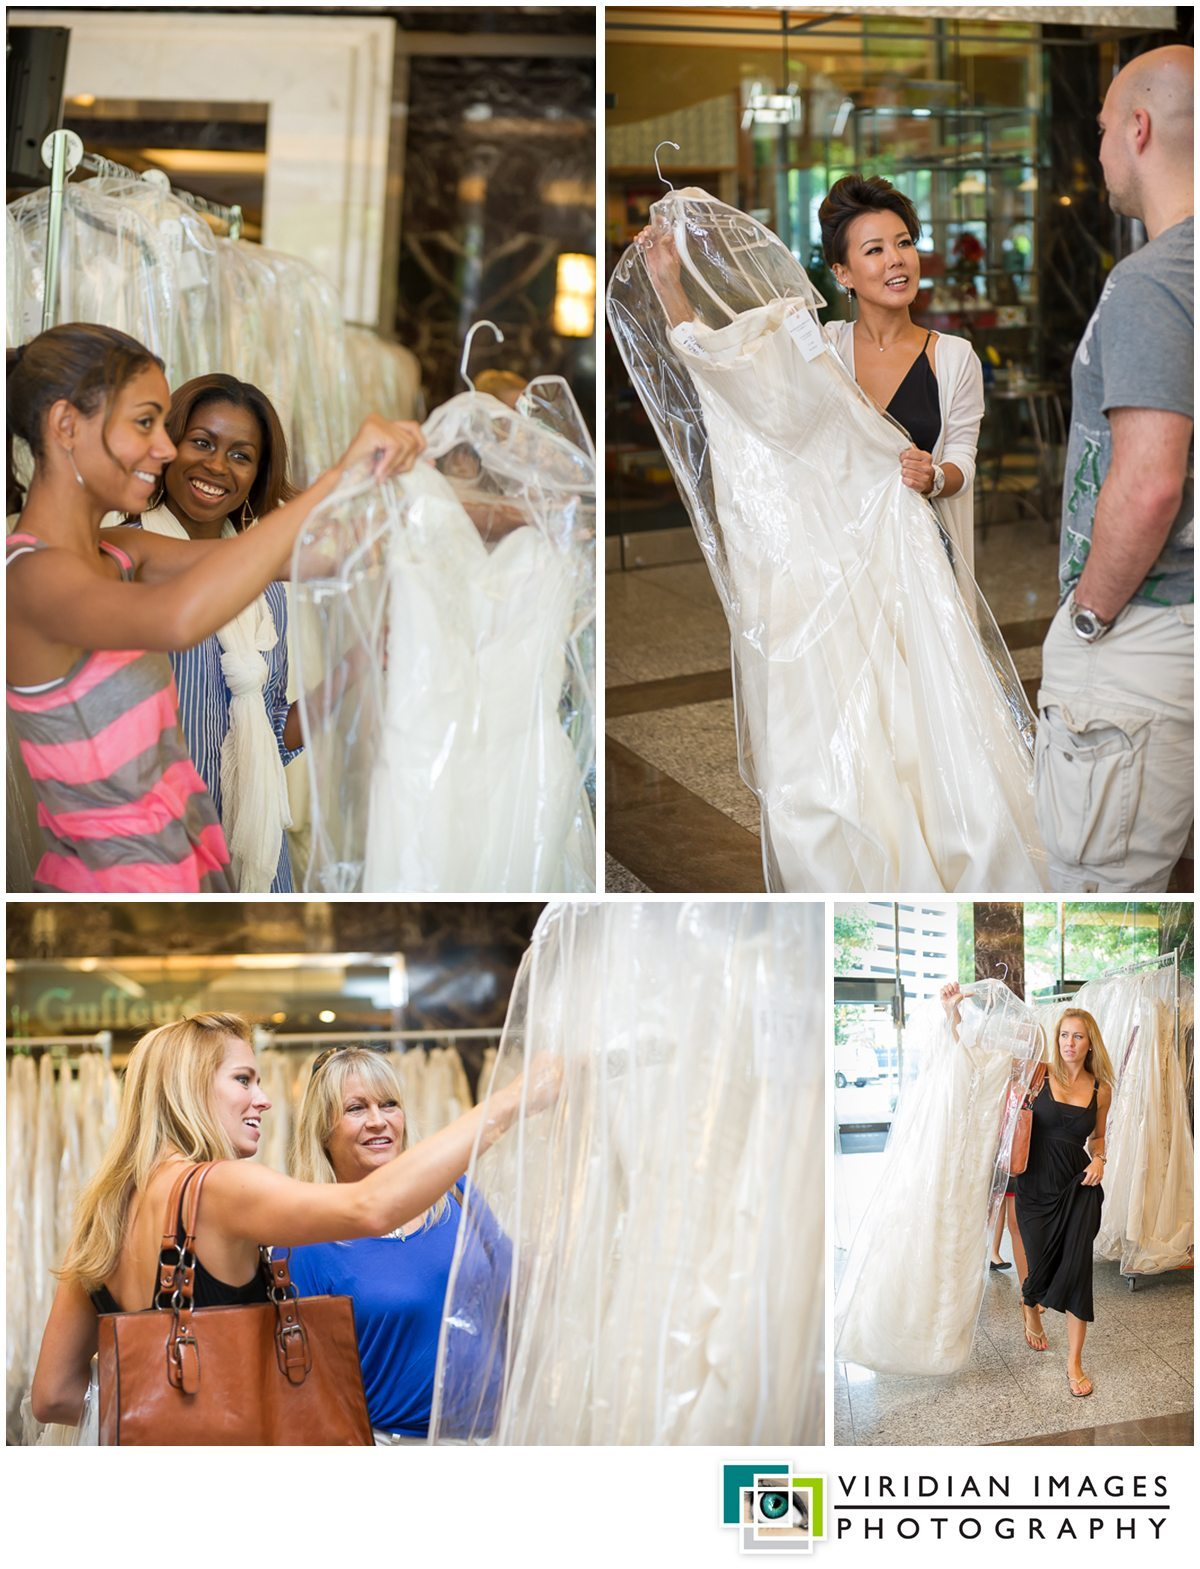 Viridian_Images_Photography_Guffys_Buckhead_Bridals_Anne_Barge_7_photo